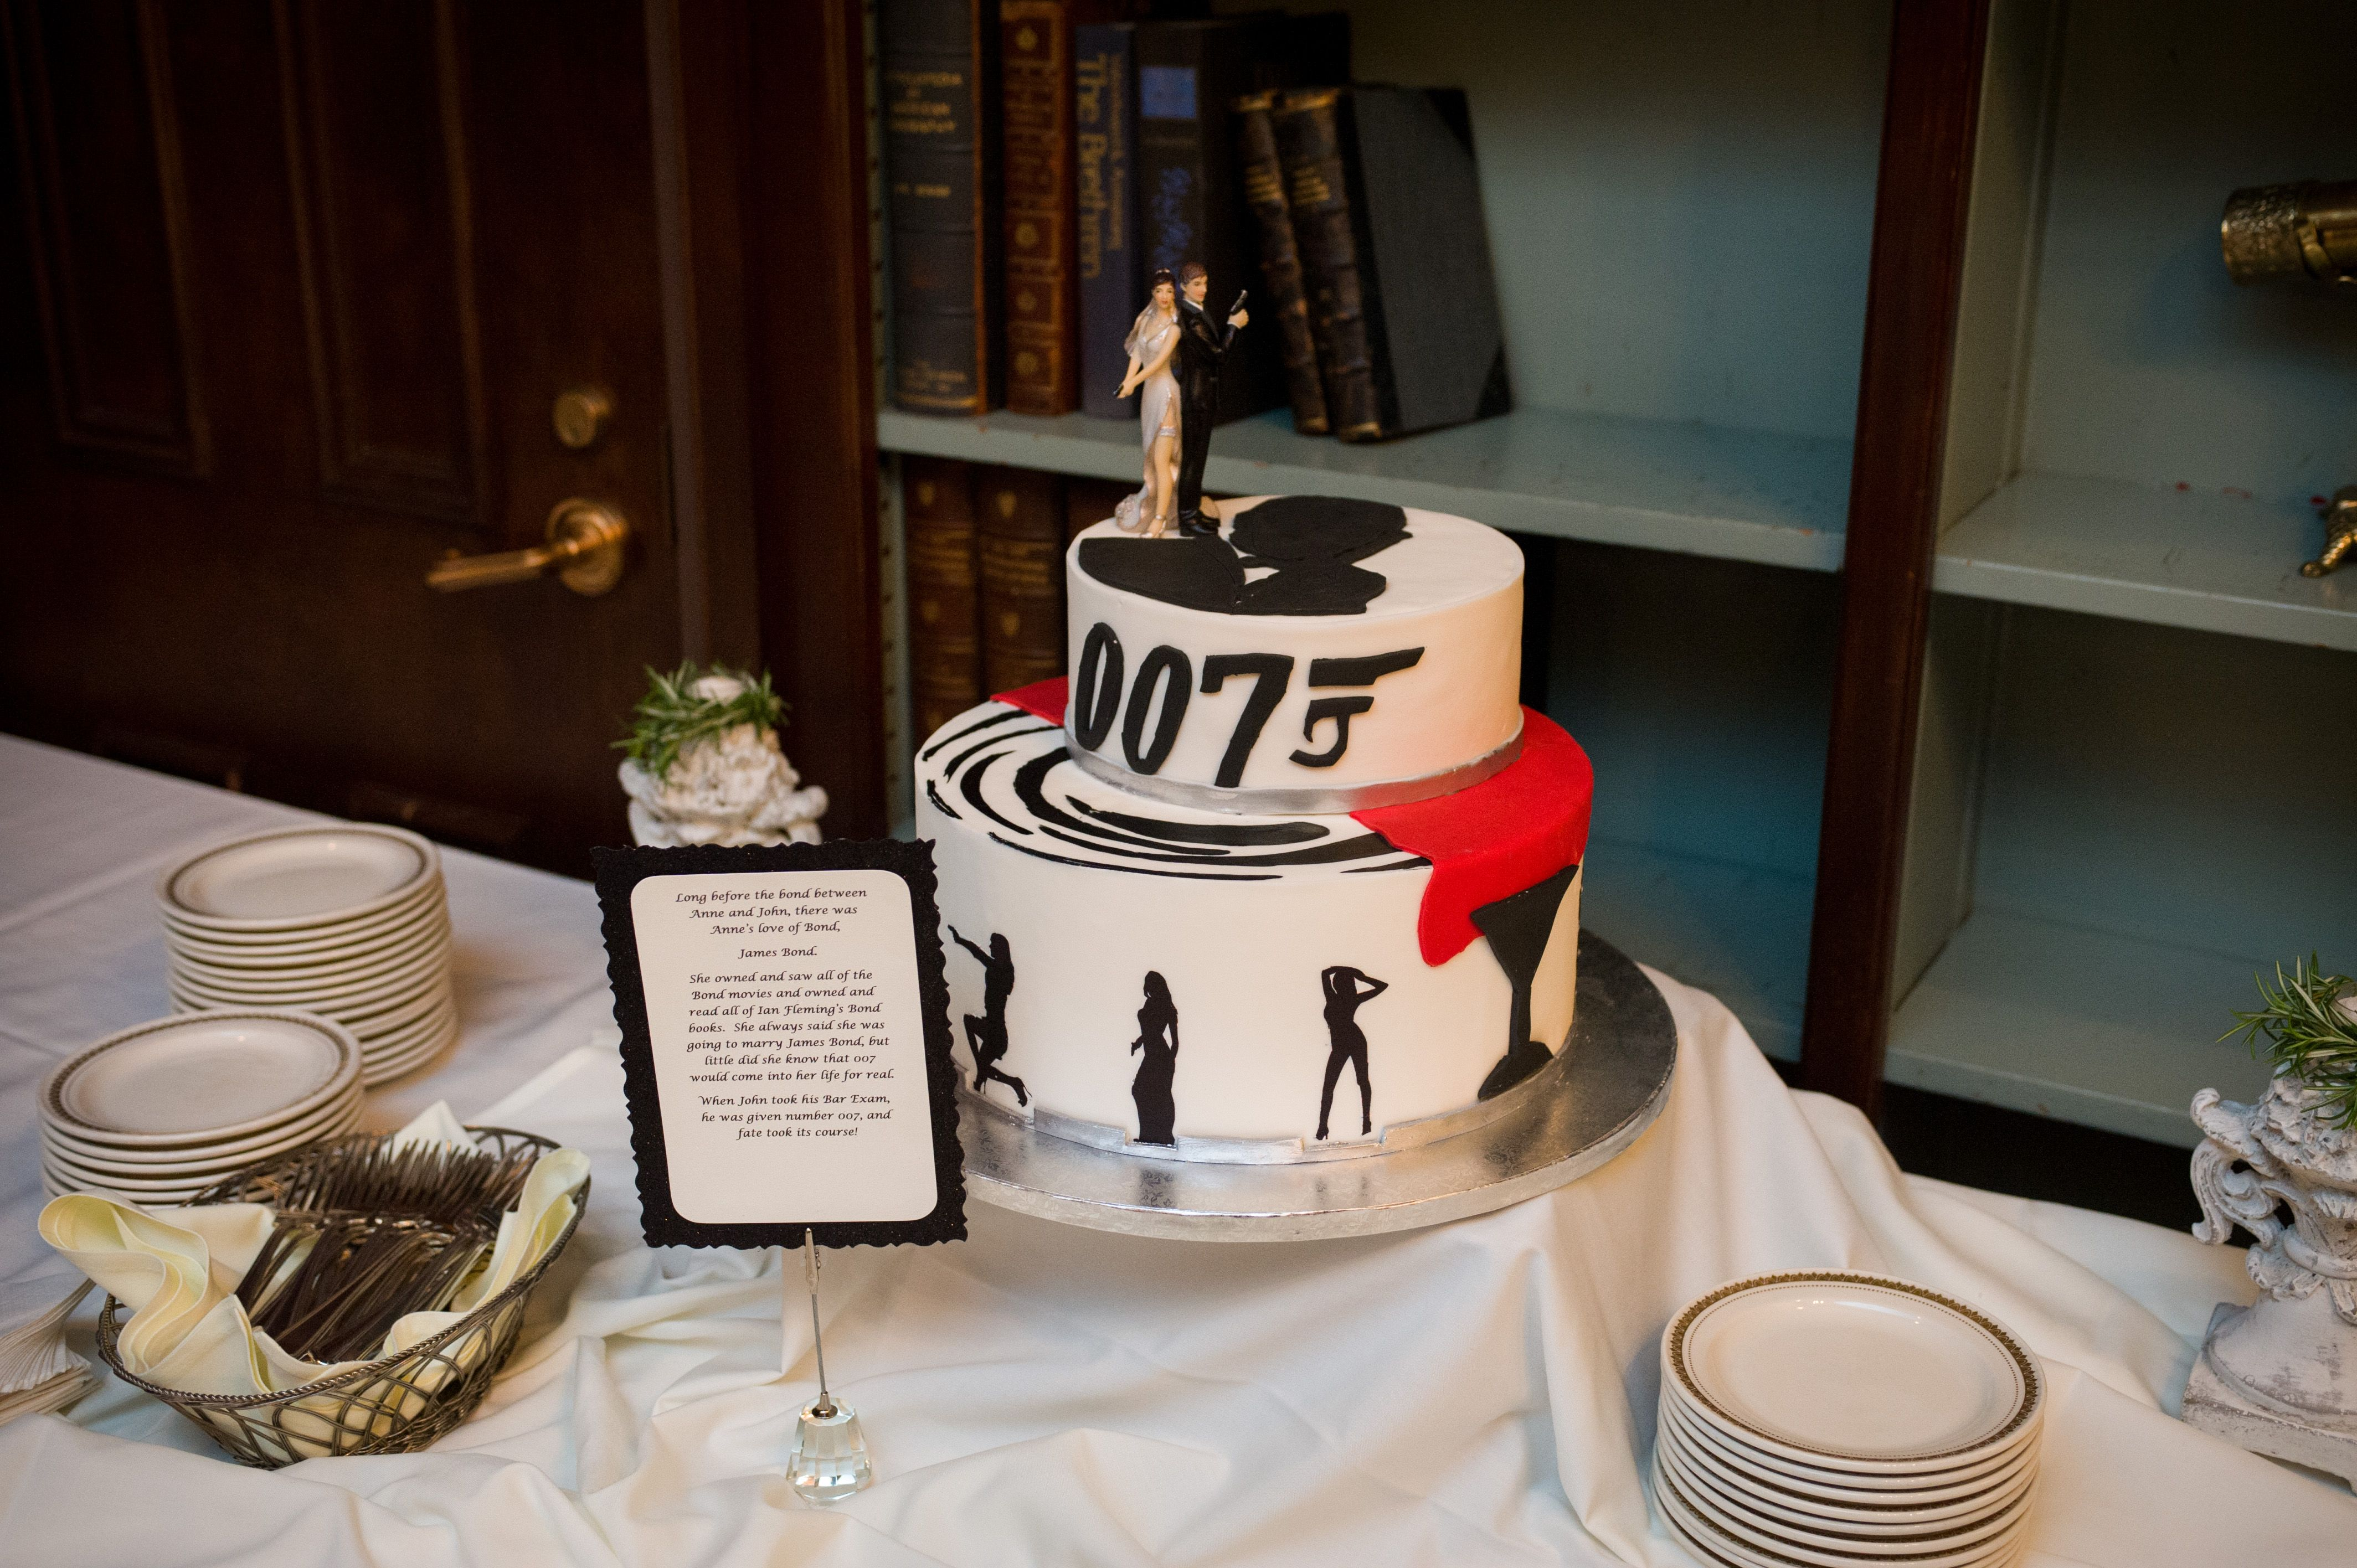 James Bond Grooms Cake Photo By Feehly Photography Www